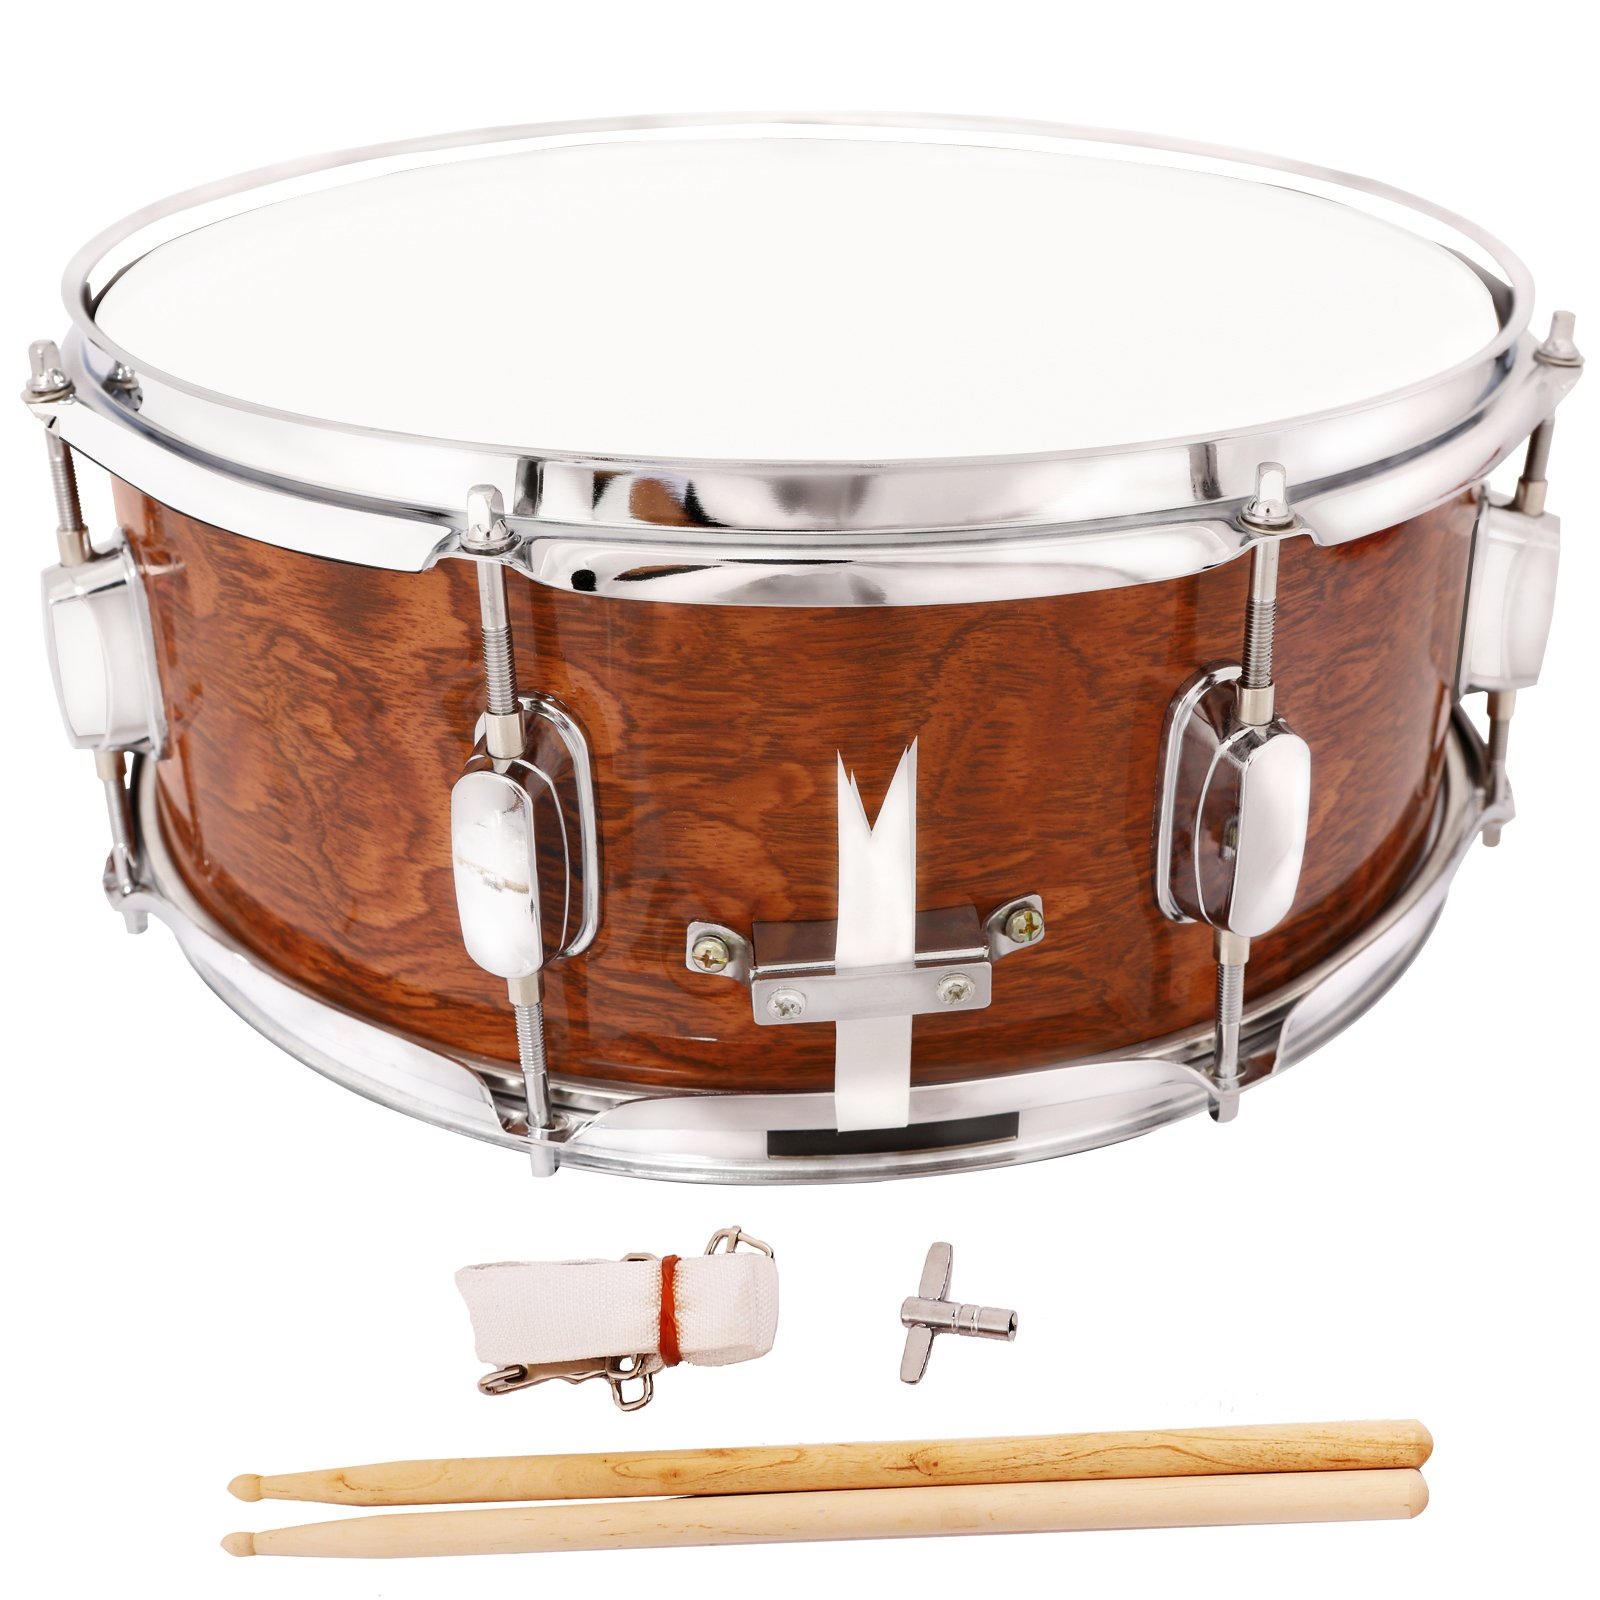 LAGRIMA Student Beginner Snare Drum W/Drum Key, Drumsticks and Strap|14x5.5 inch|Real Wood Shell|8 Metal Tuning Lugs by LAGRIMA (Image #1)